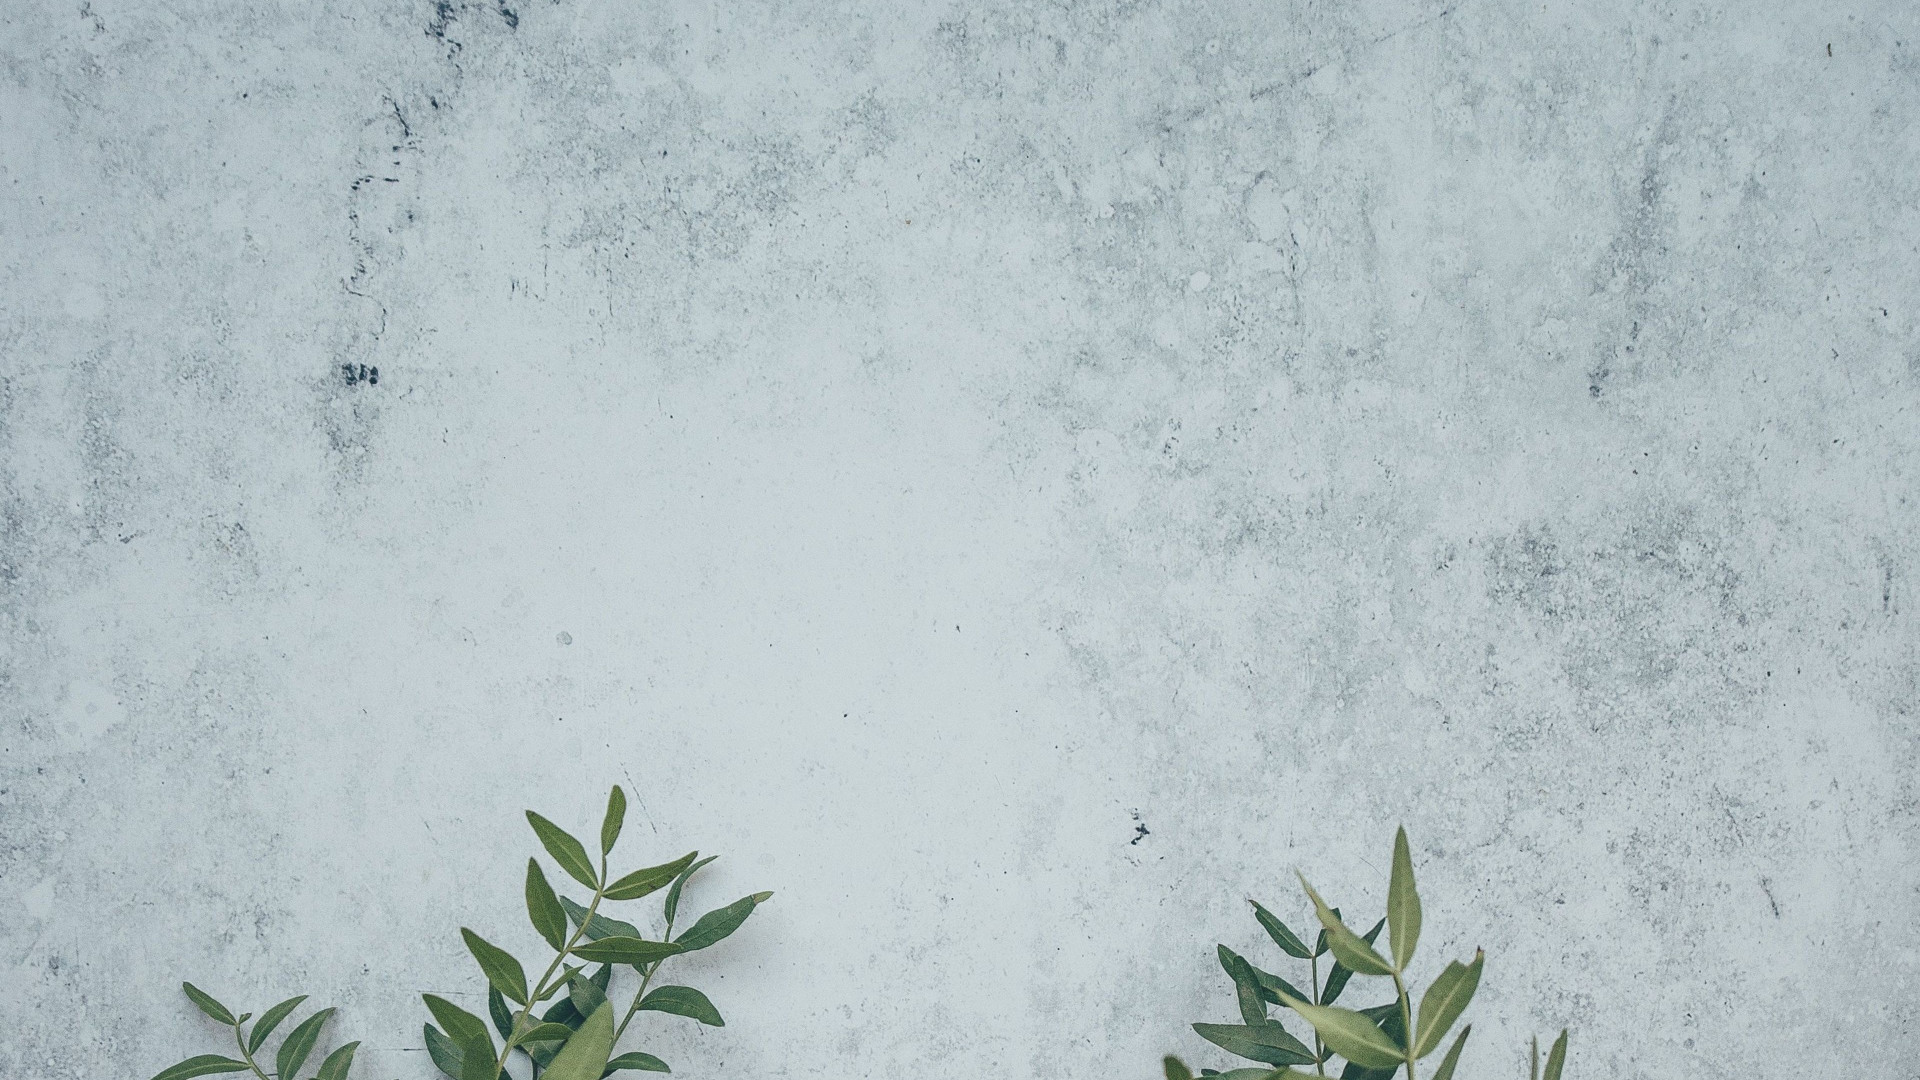 Wall Leaves - Zoom Virtual Background